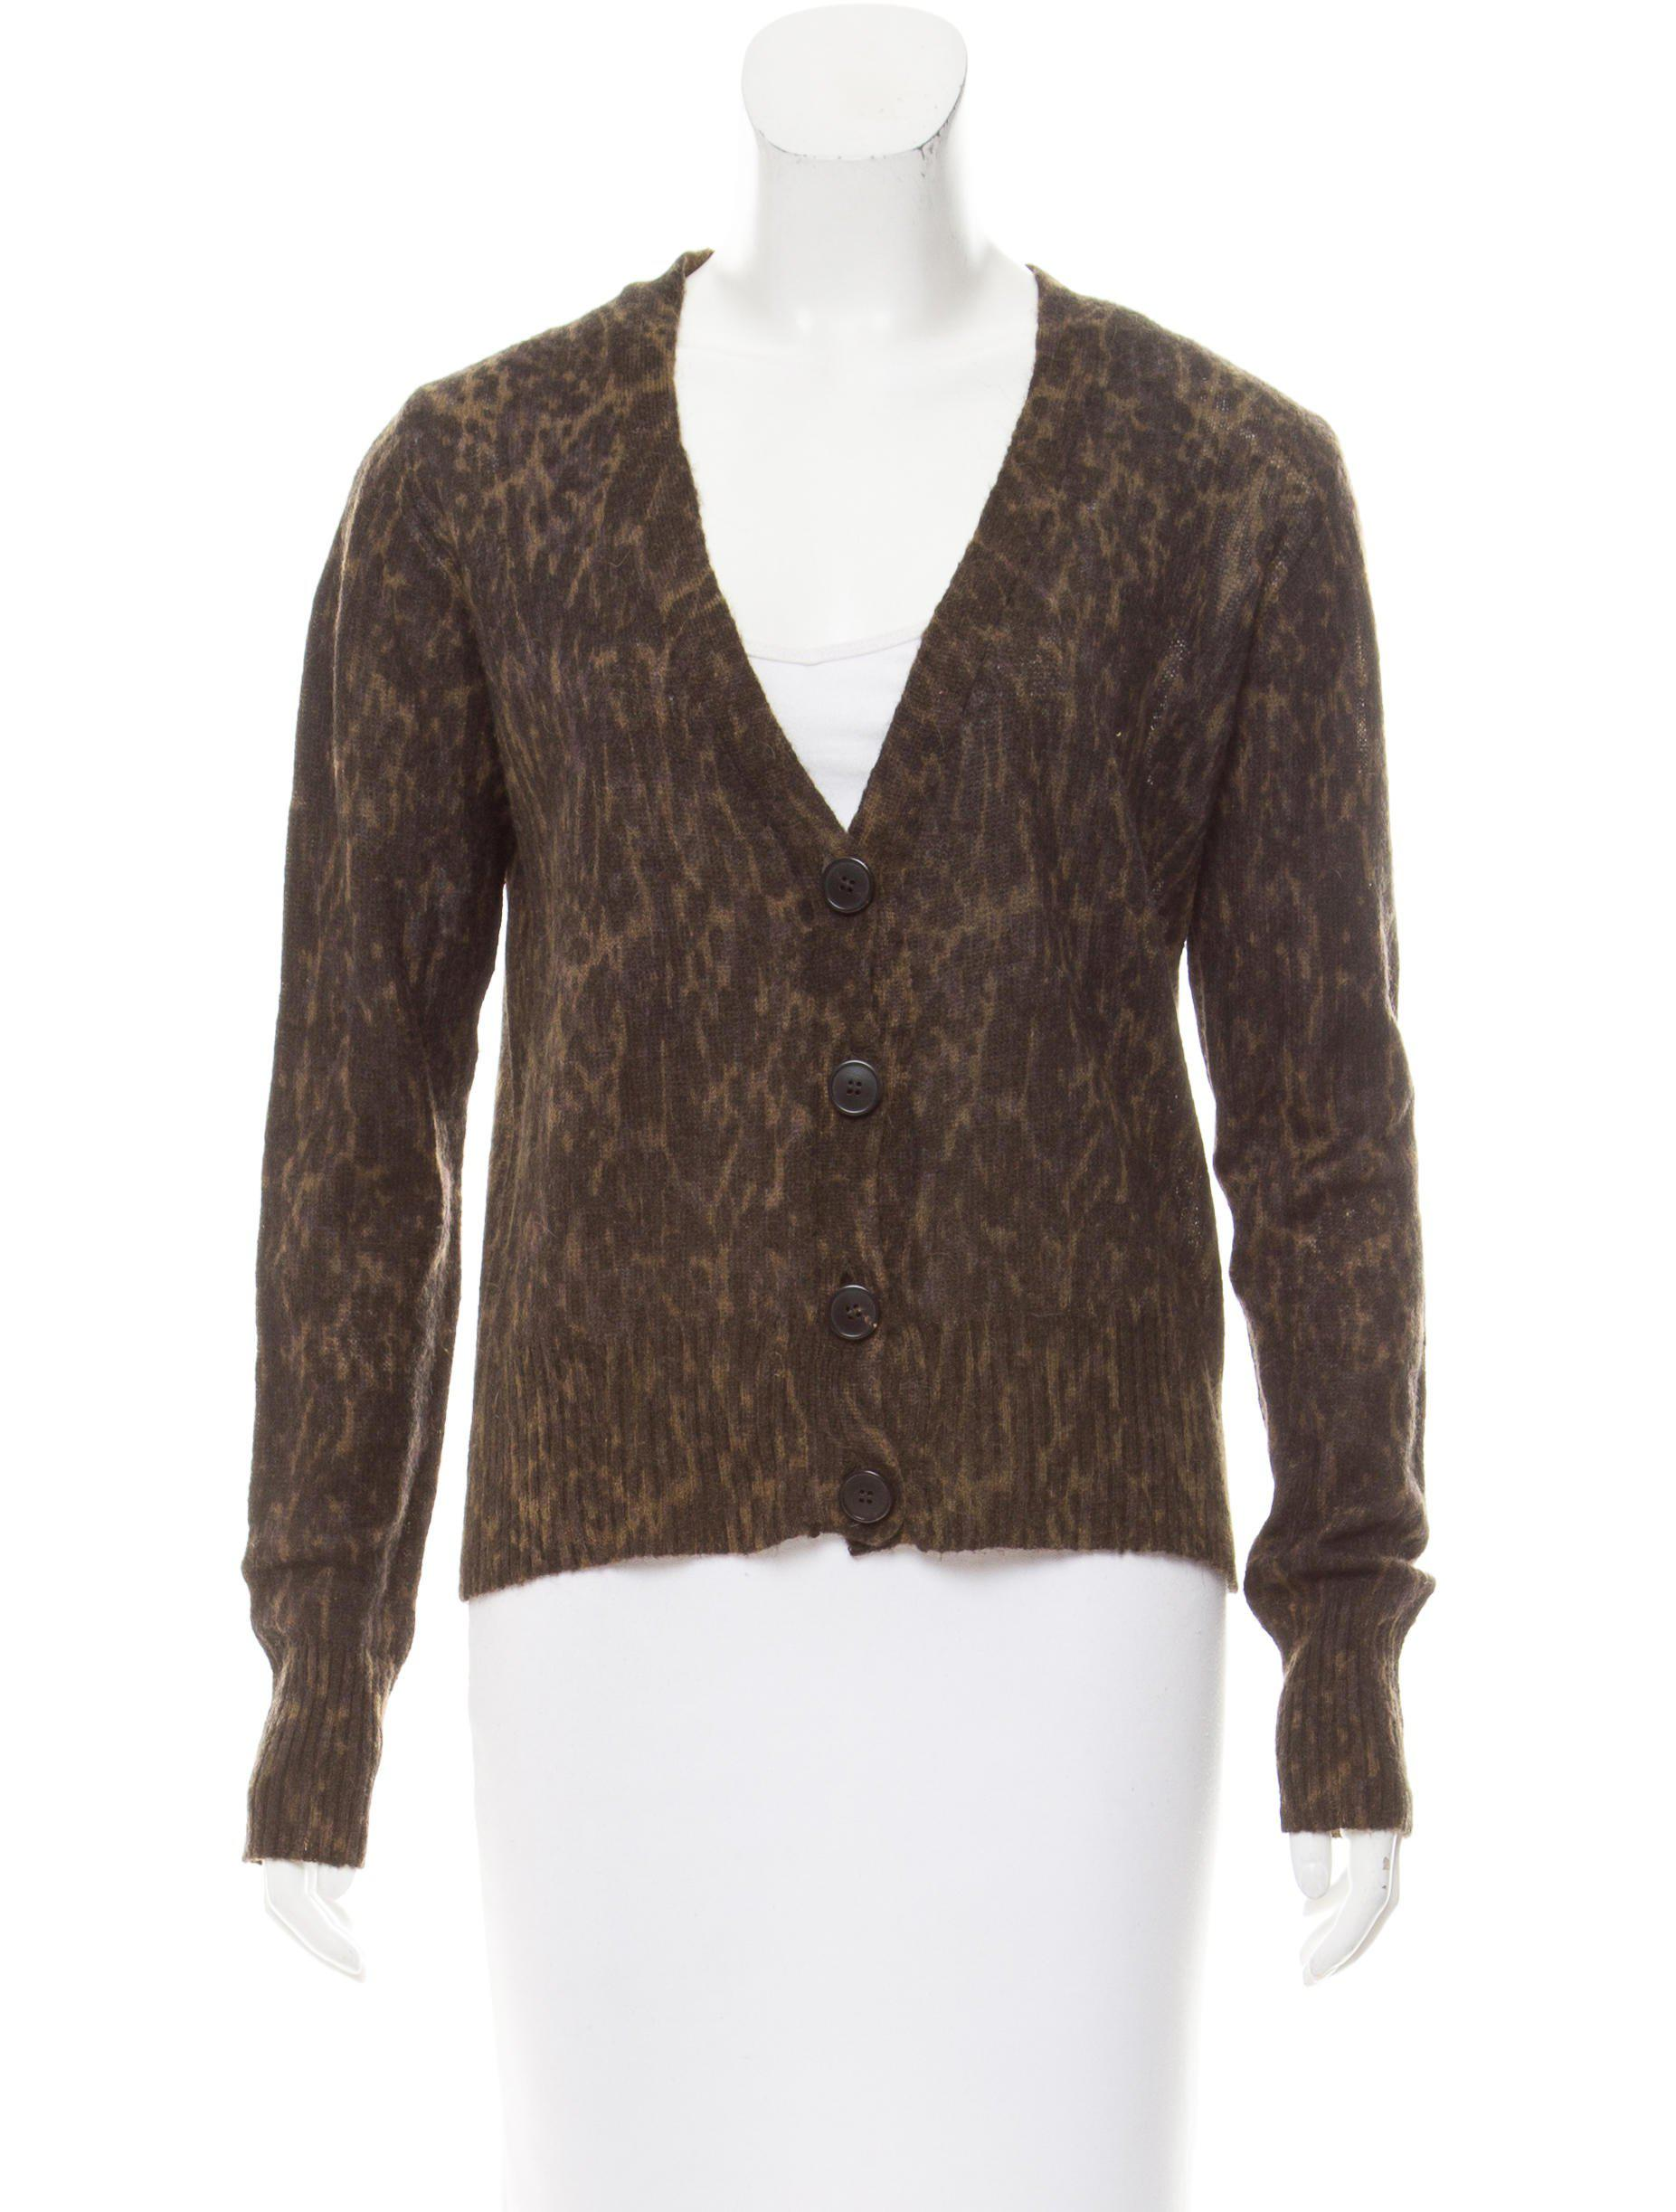 Dries van noten Leopard Print V-neck Cardigan Olive in Green | Lyst